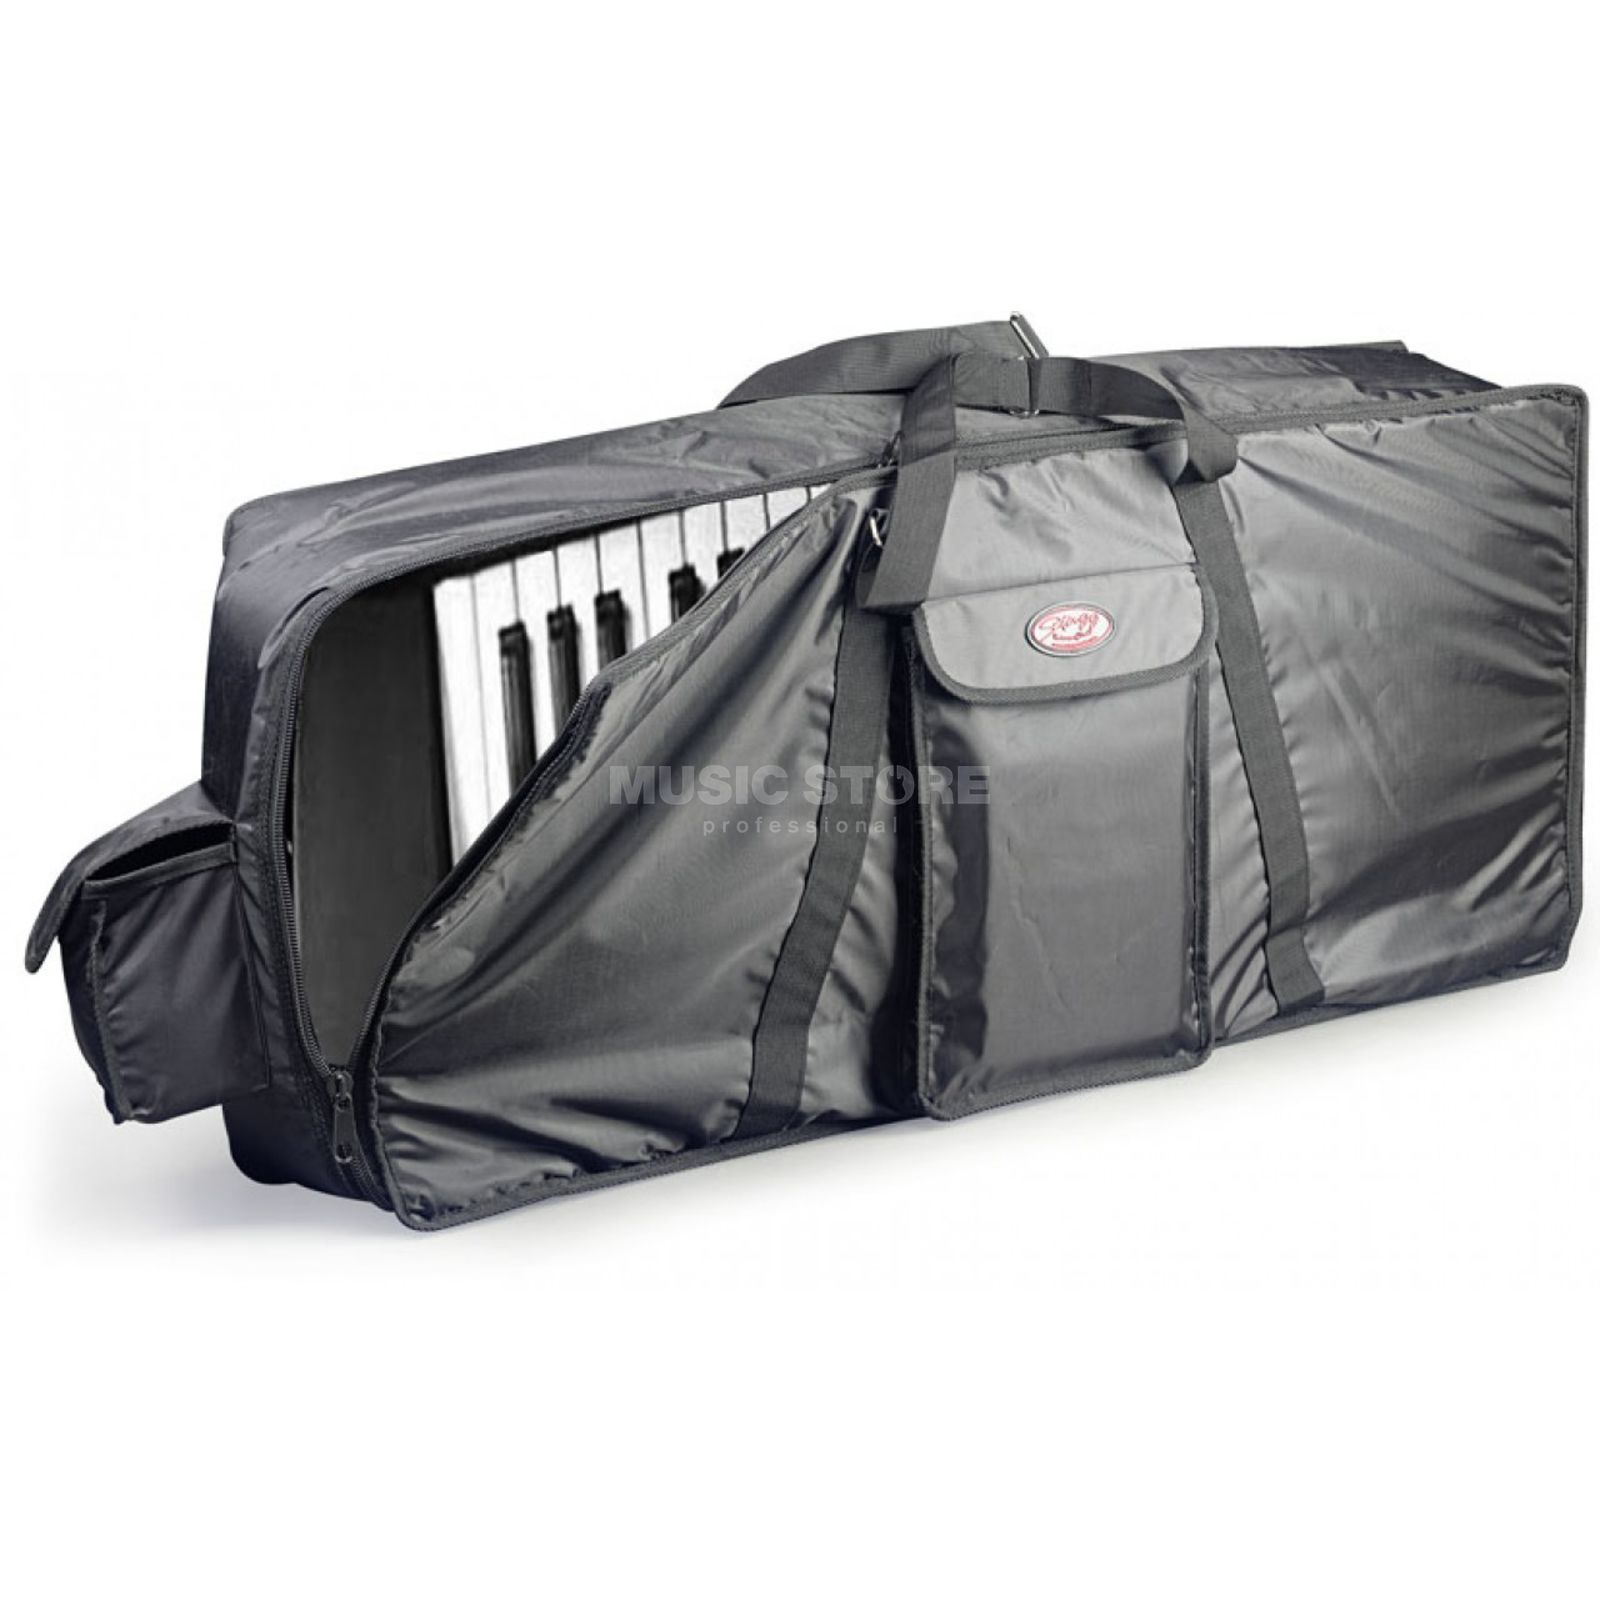 Stagg Keyboard Bag K10-115 (KC23) 112cm x 47cm x 17 cm (10 mm) Produktbillede